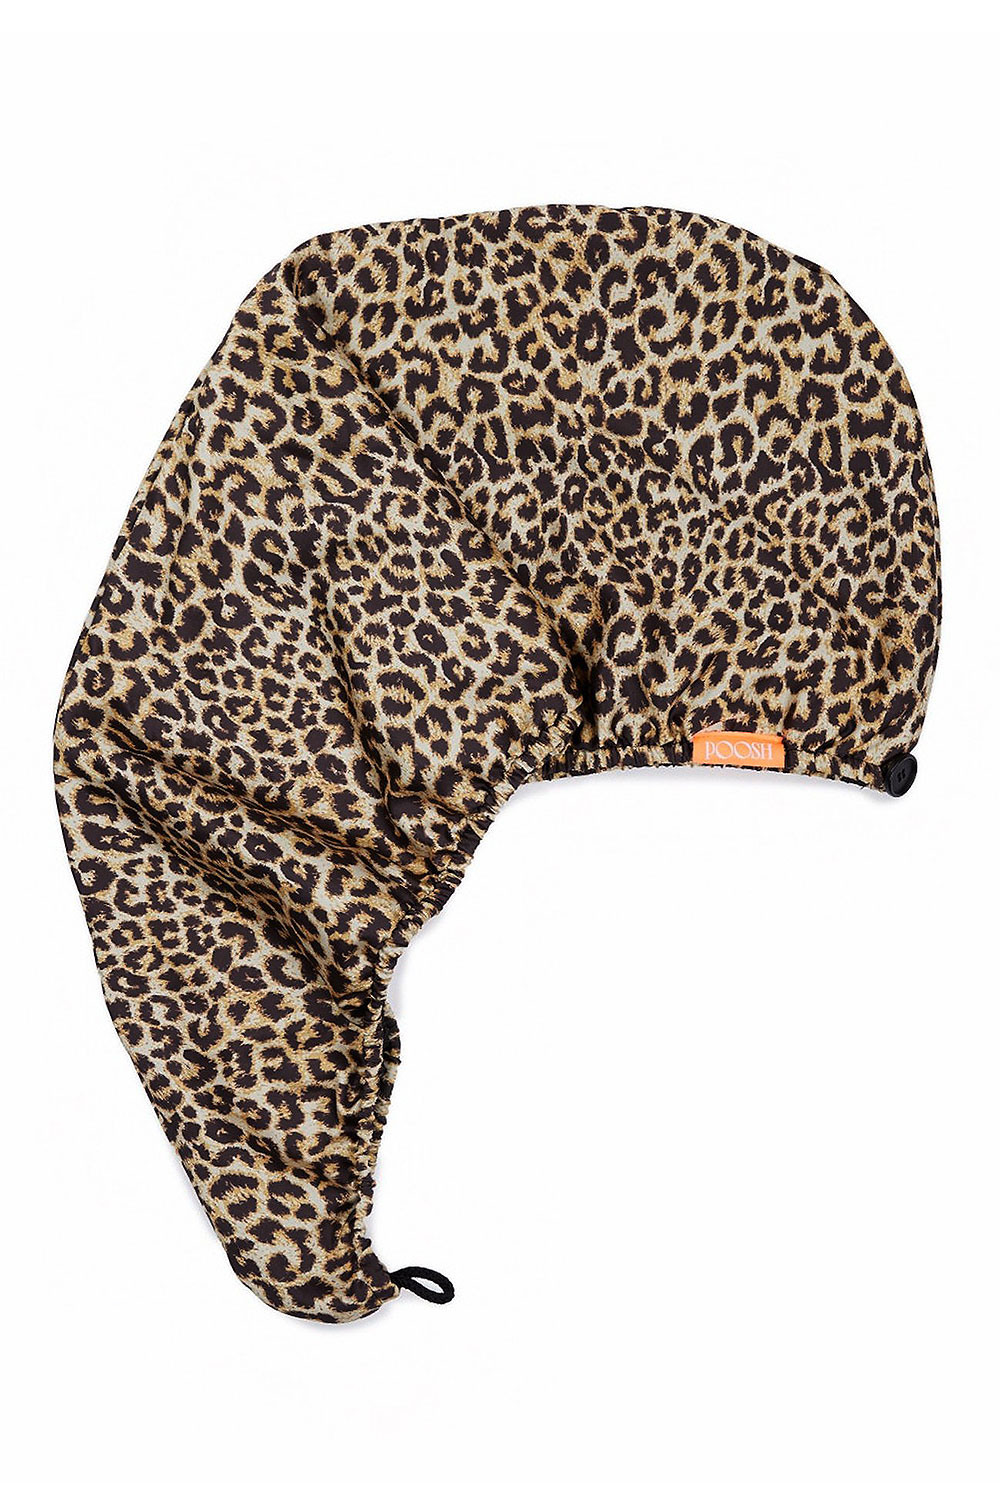 Aquis x Poosh Rapid Dry Hair Turban